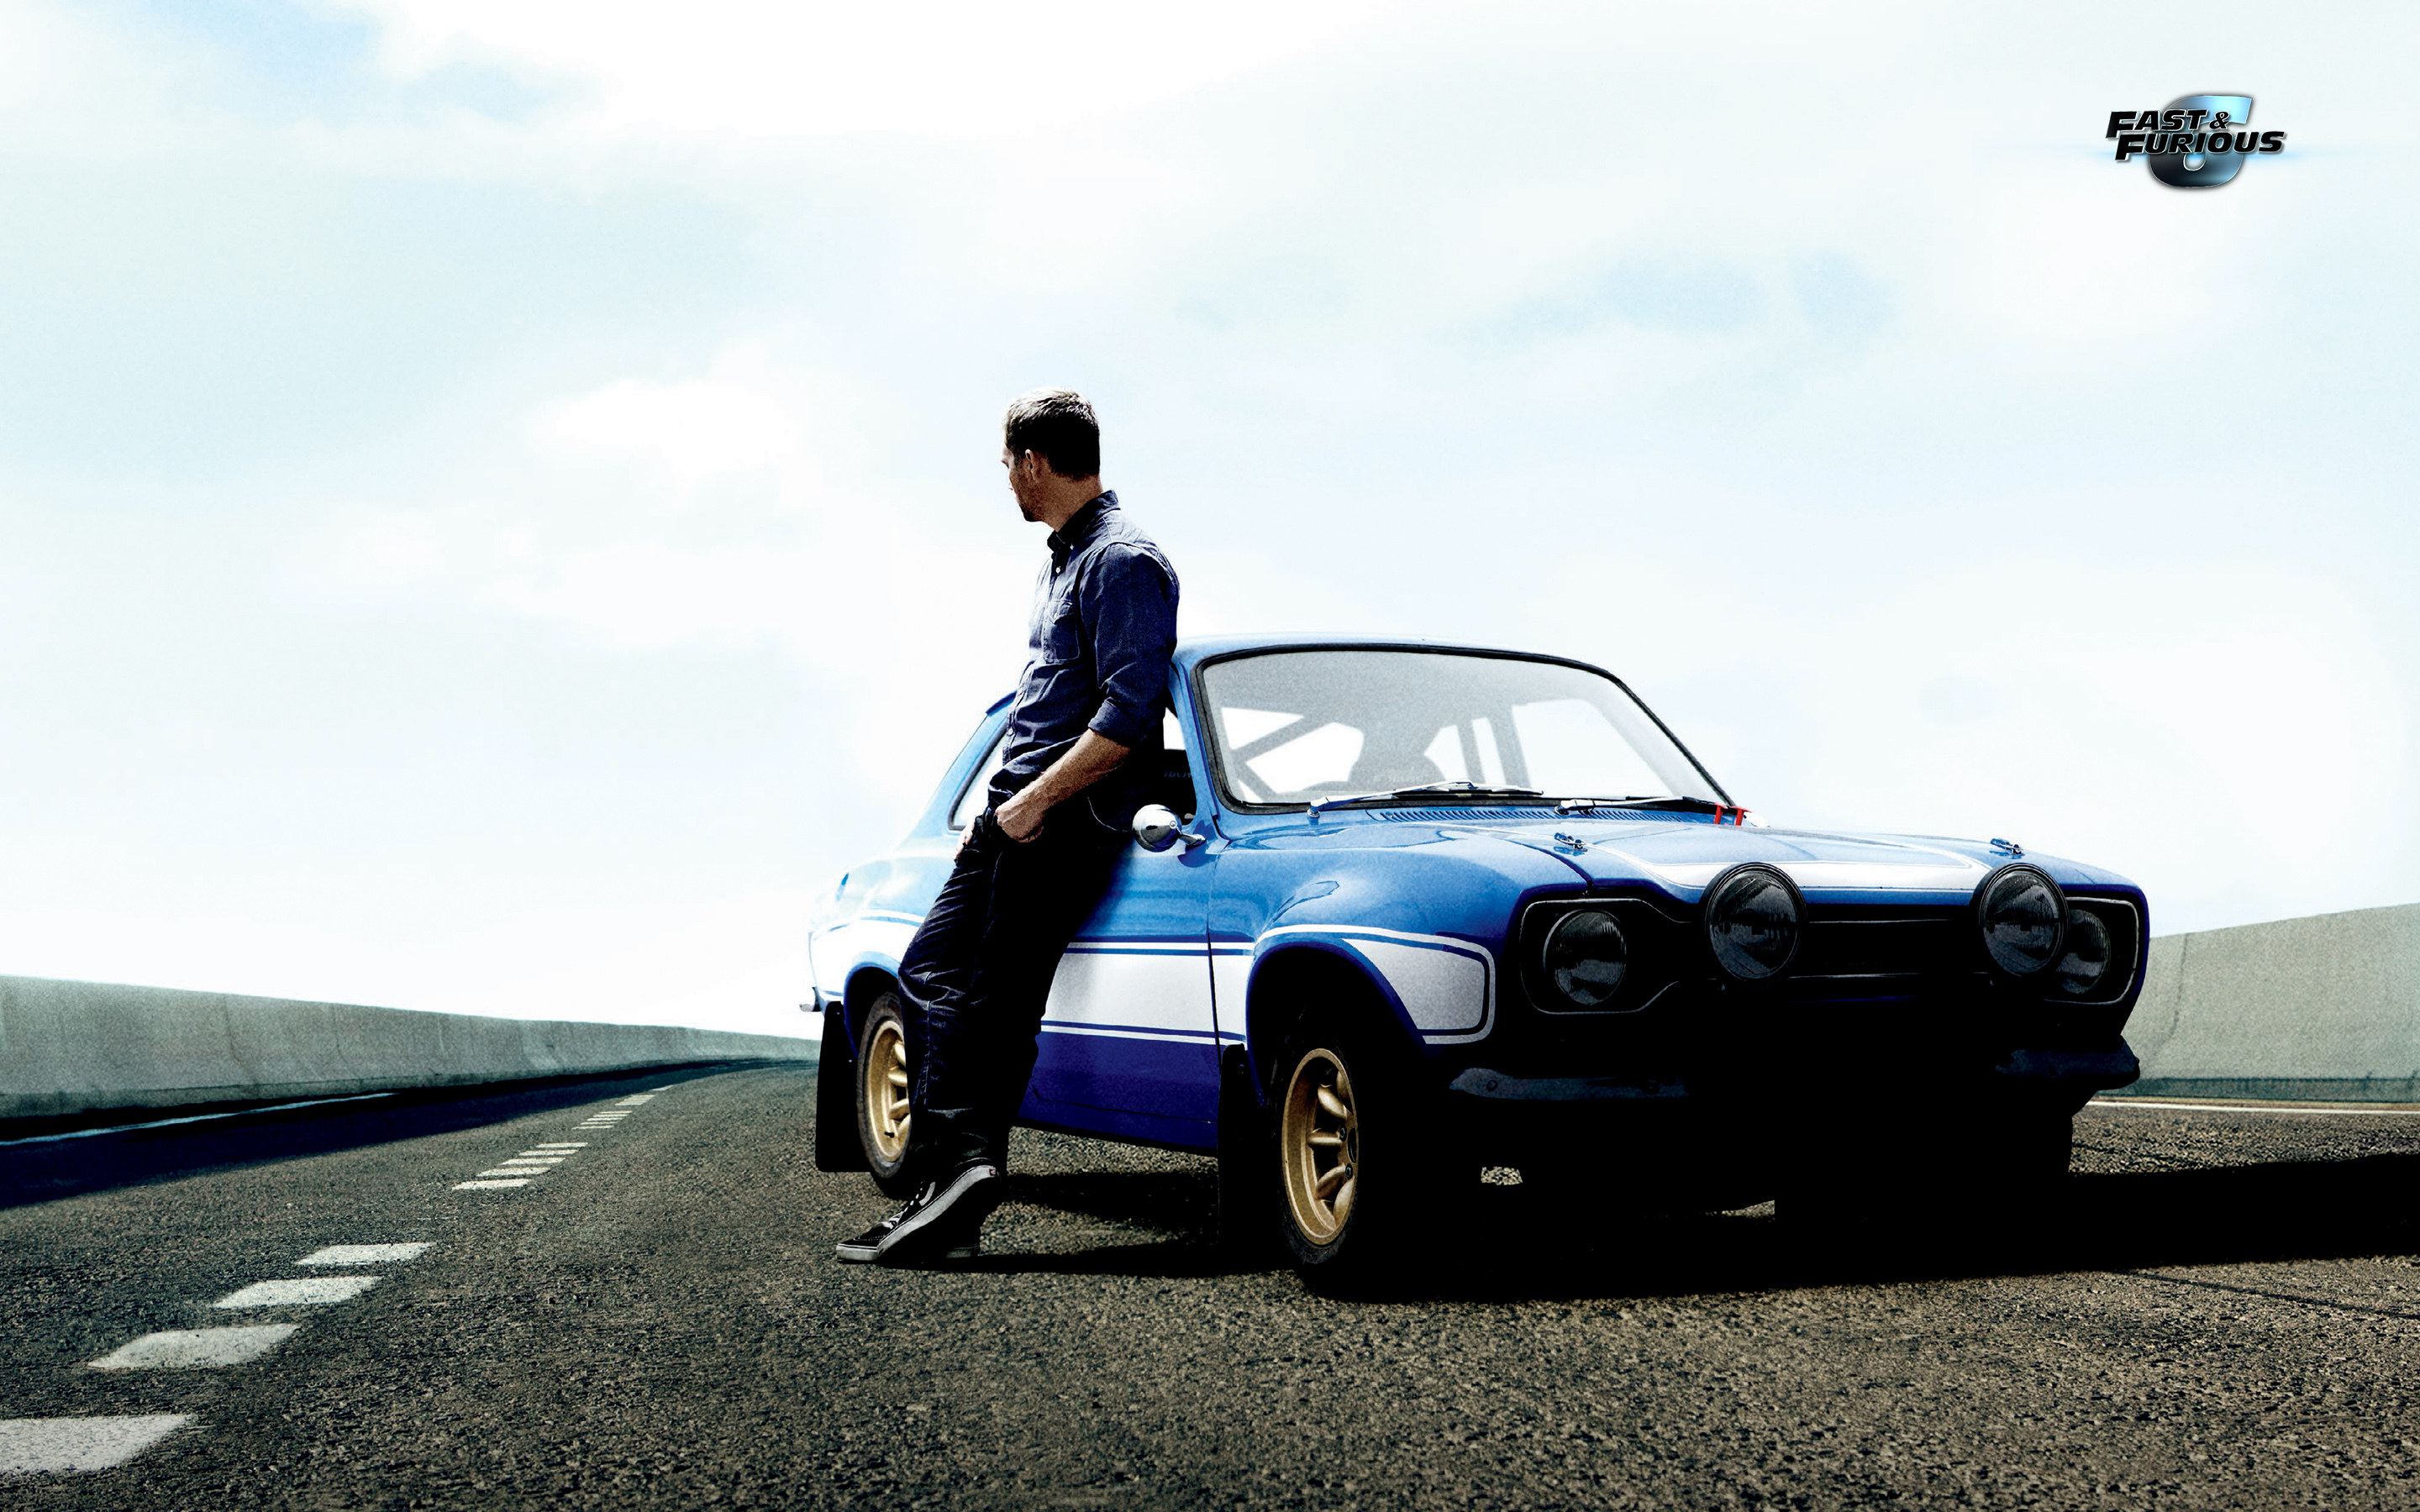 paul_walker_in_fast__furious_6-wide.jpg